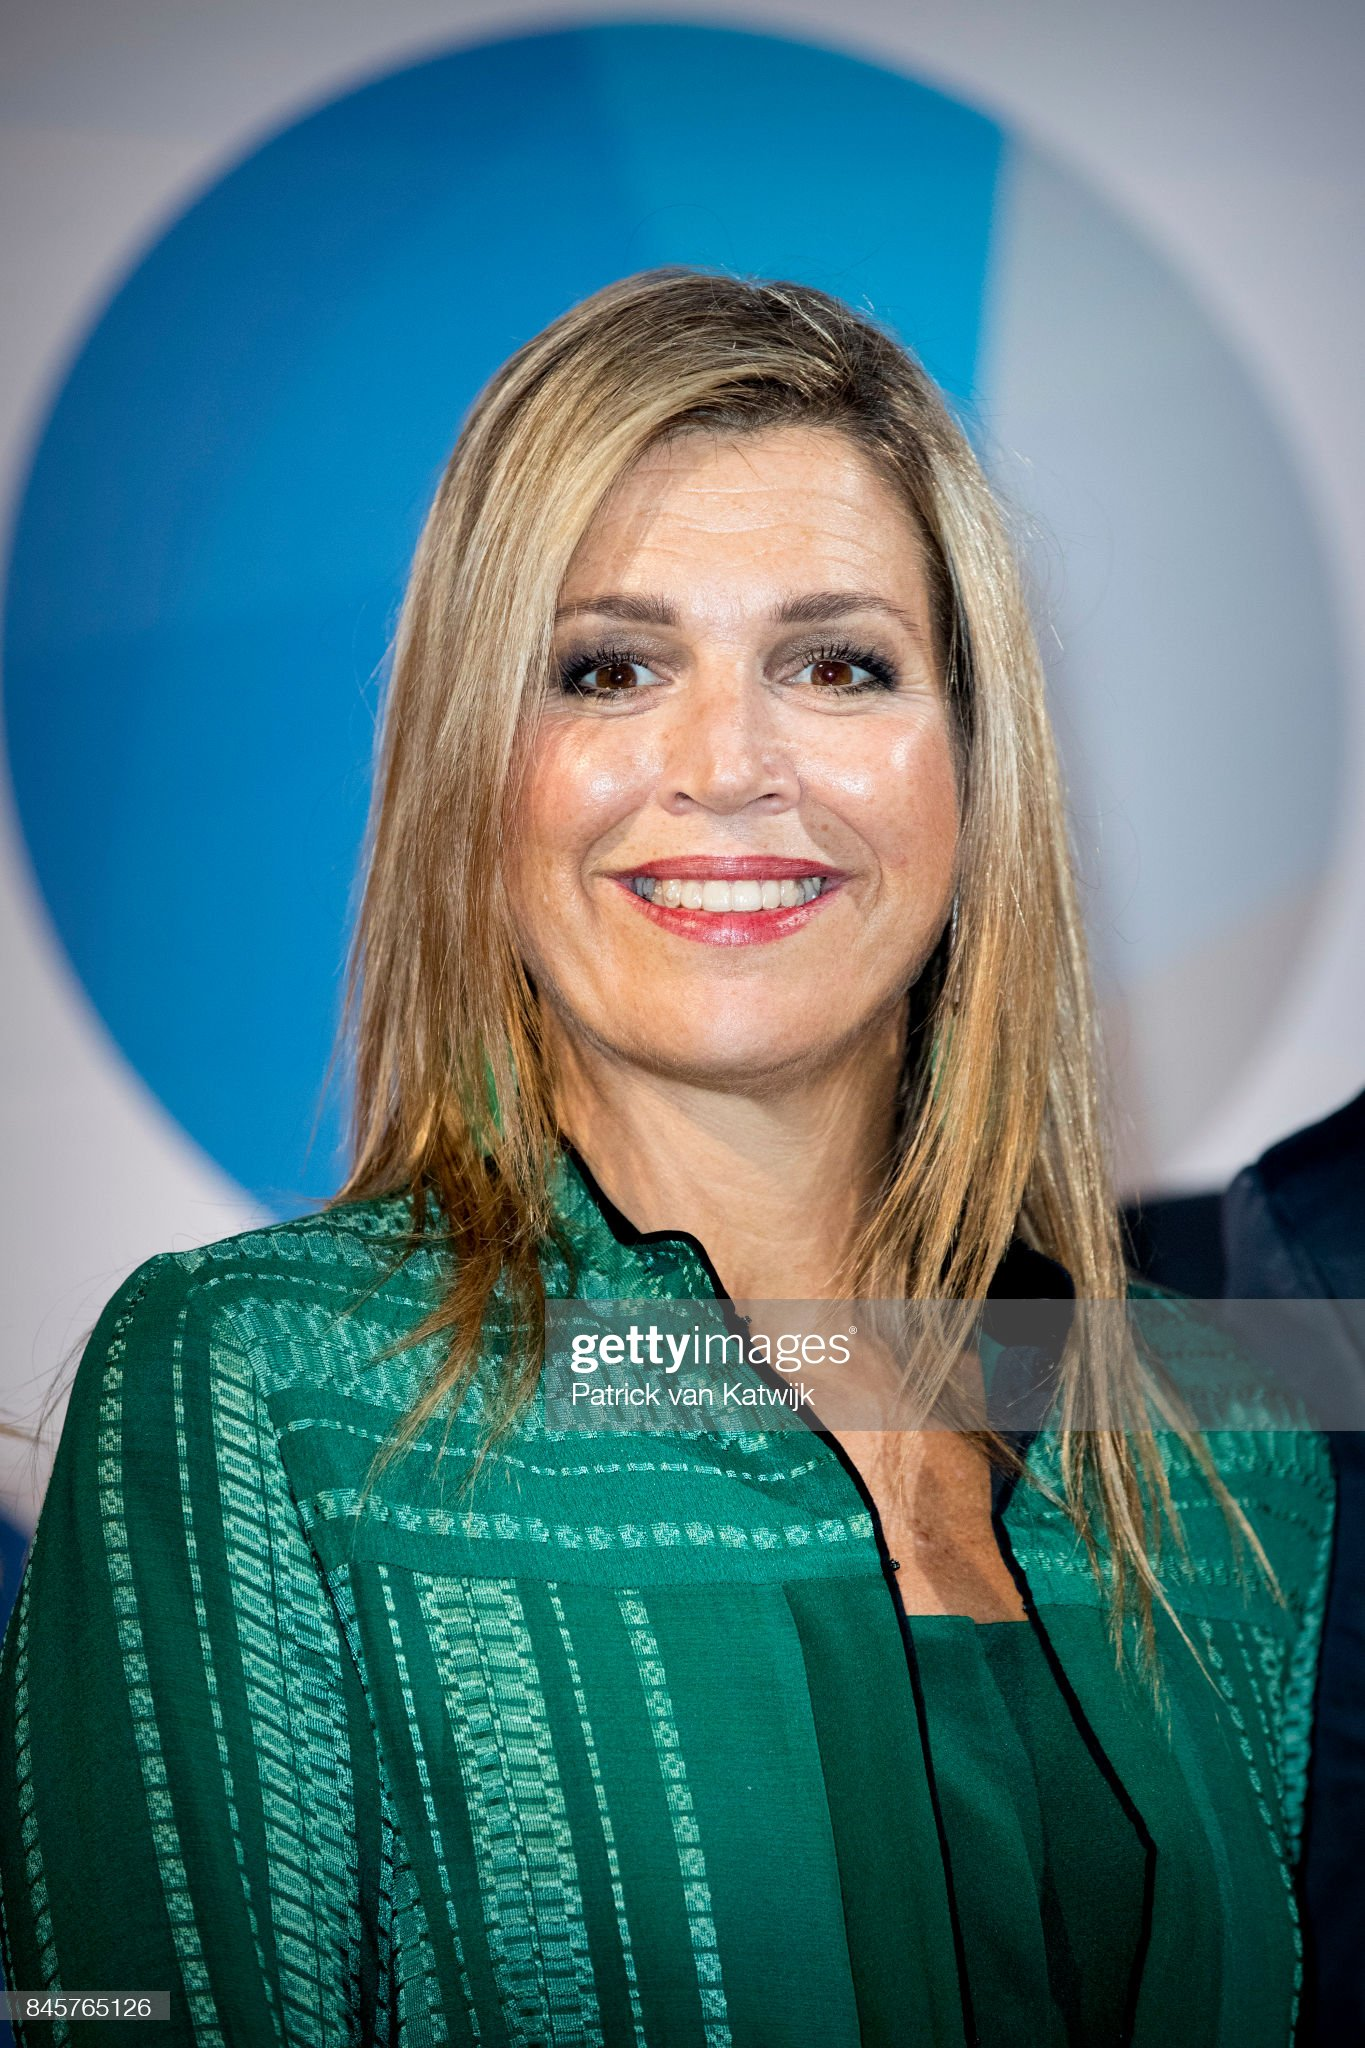 Queen Maxima attends the LOEY Awards for best online entrepreneur in Amsterdam : News Photo